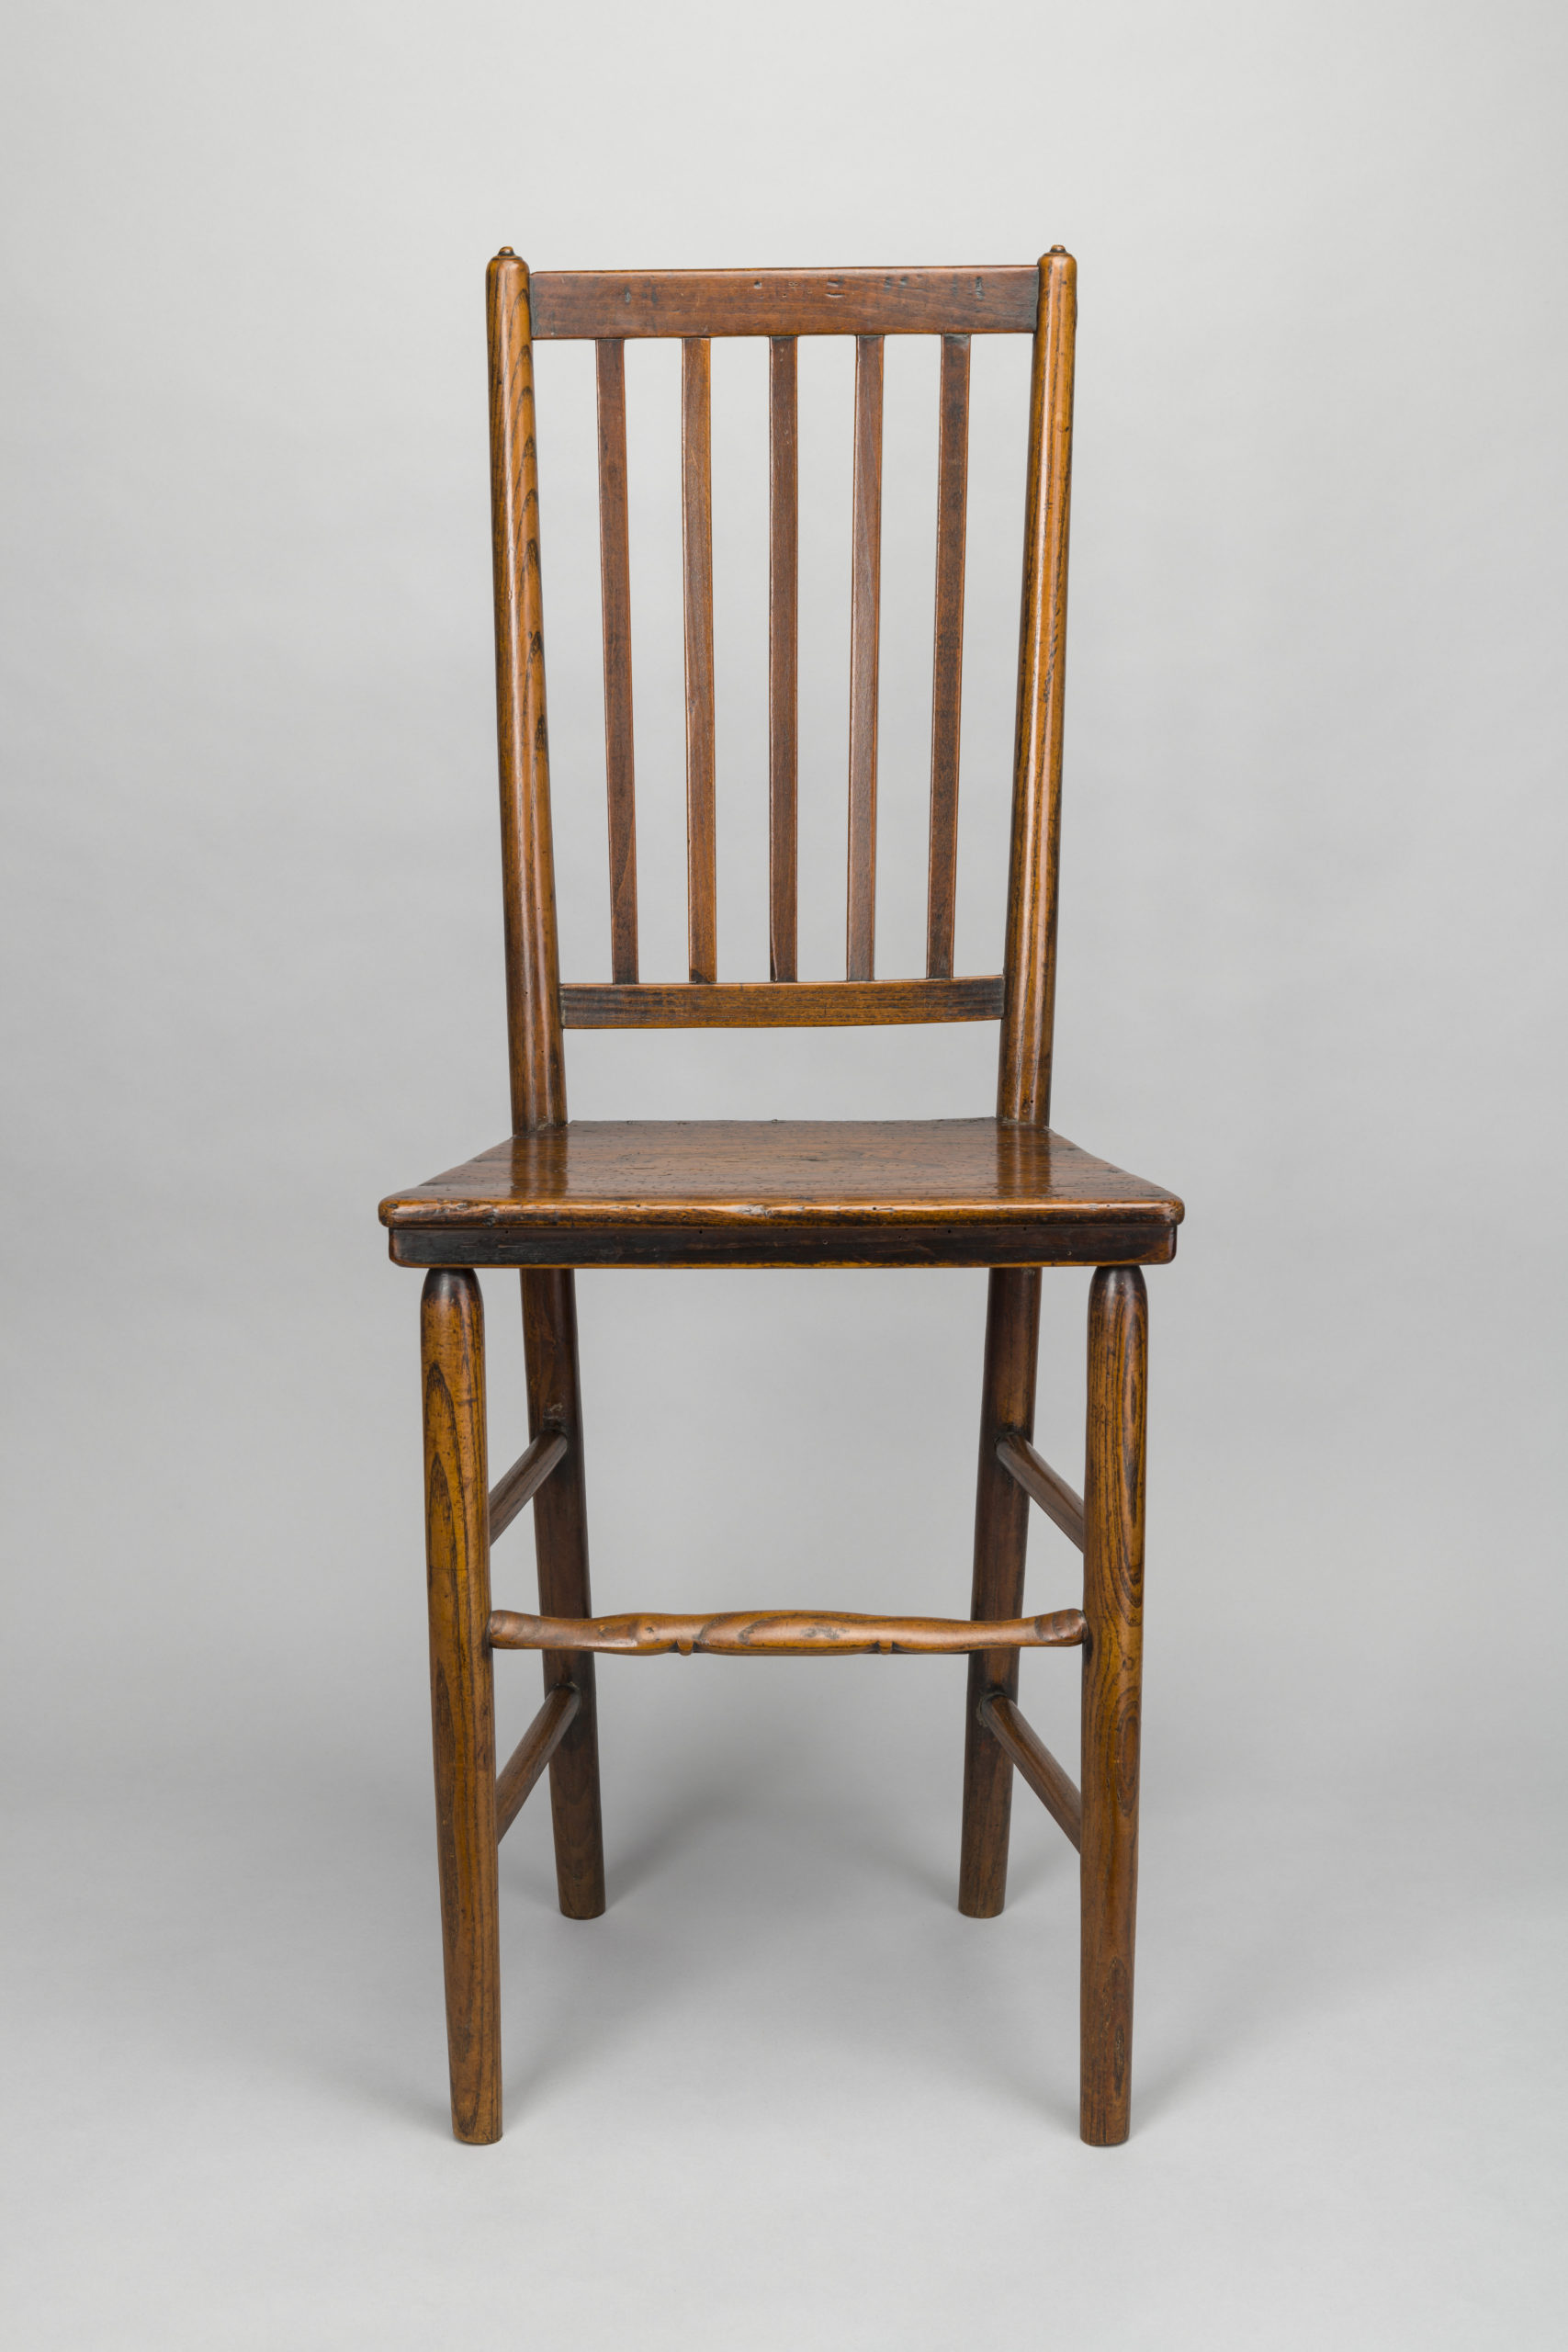 Photograph of a wooden chair with wooden spindles on the back of the chair.